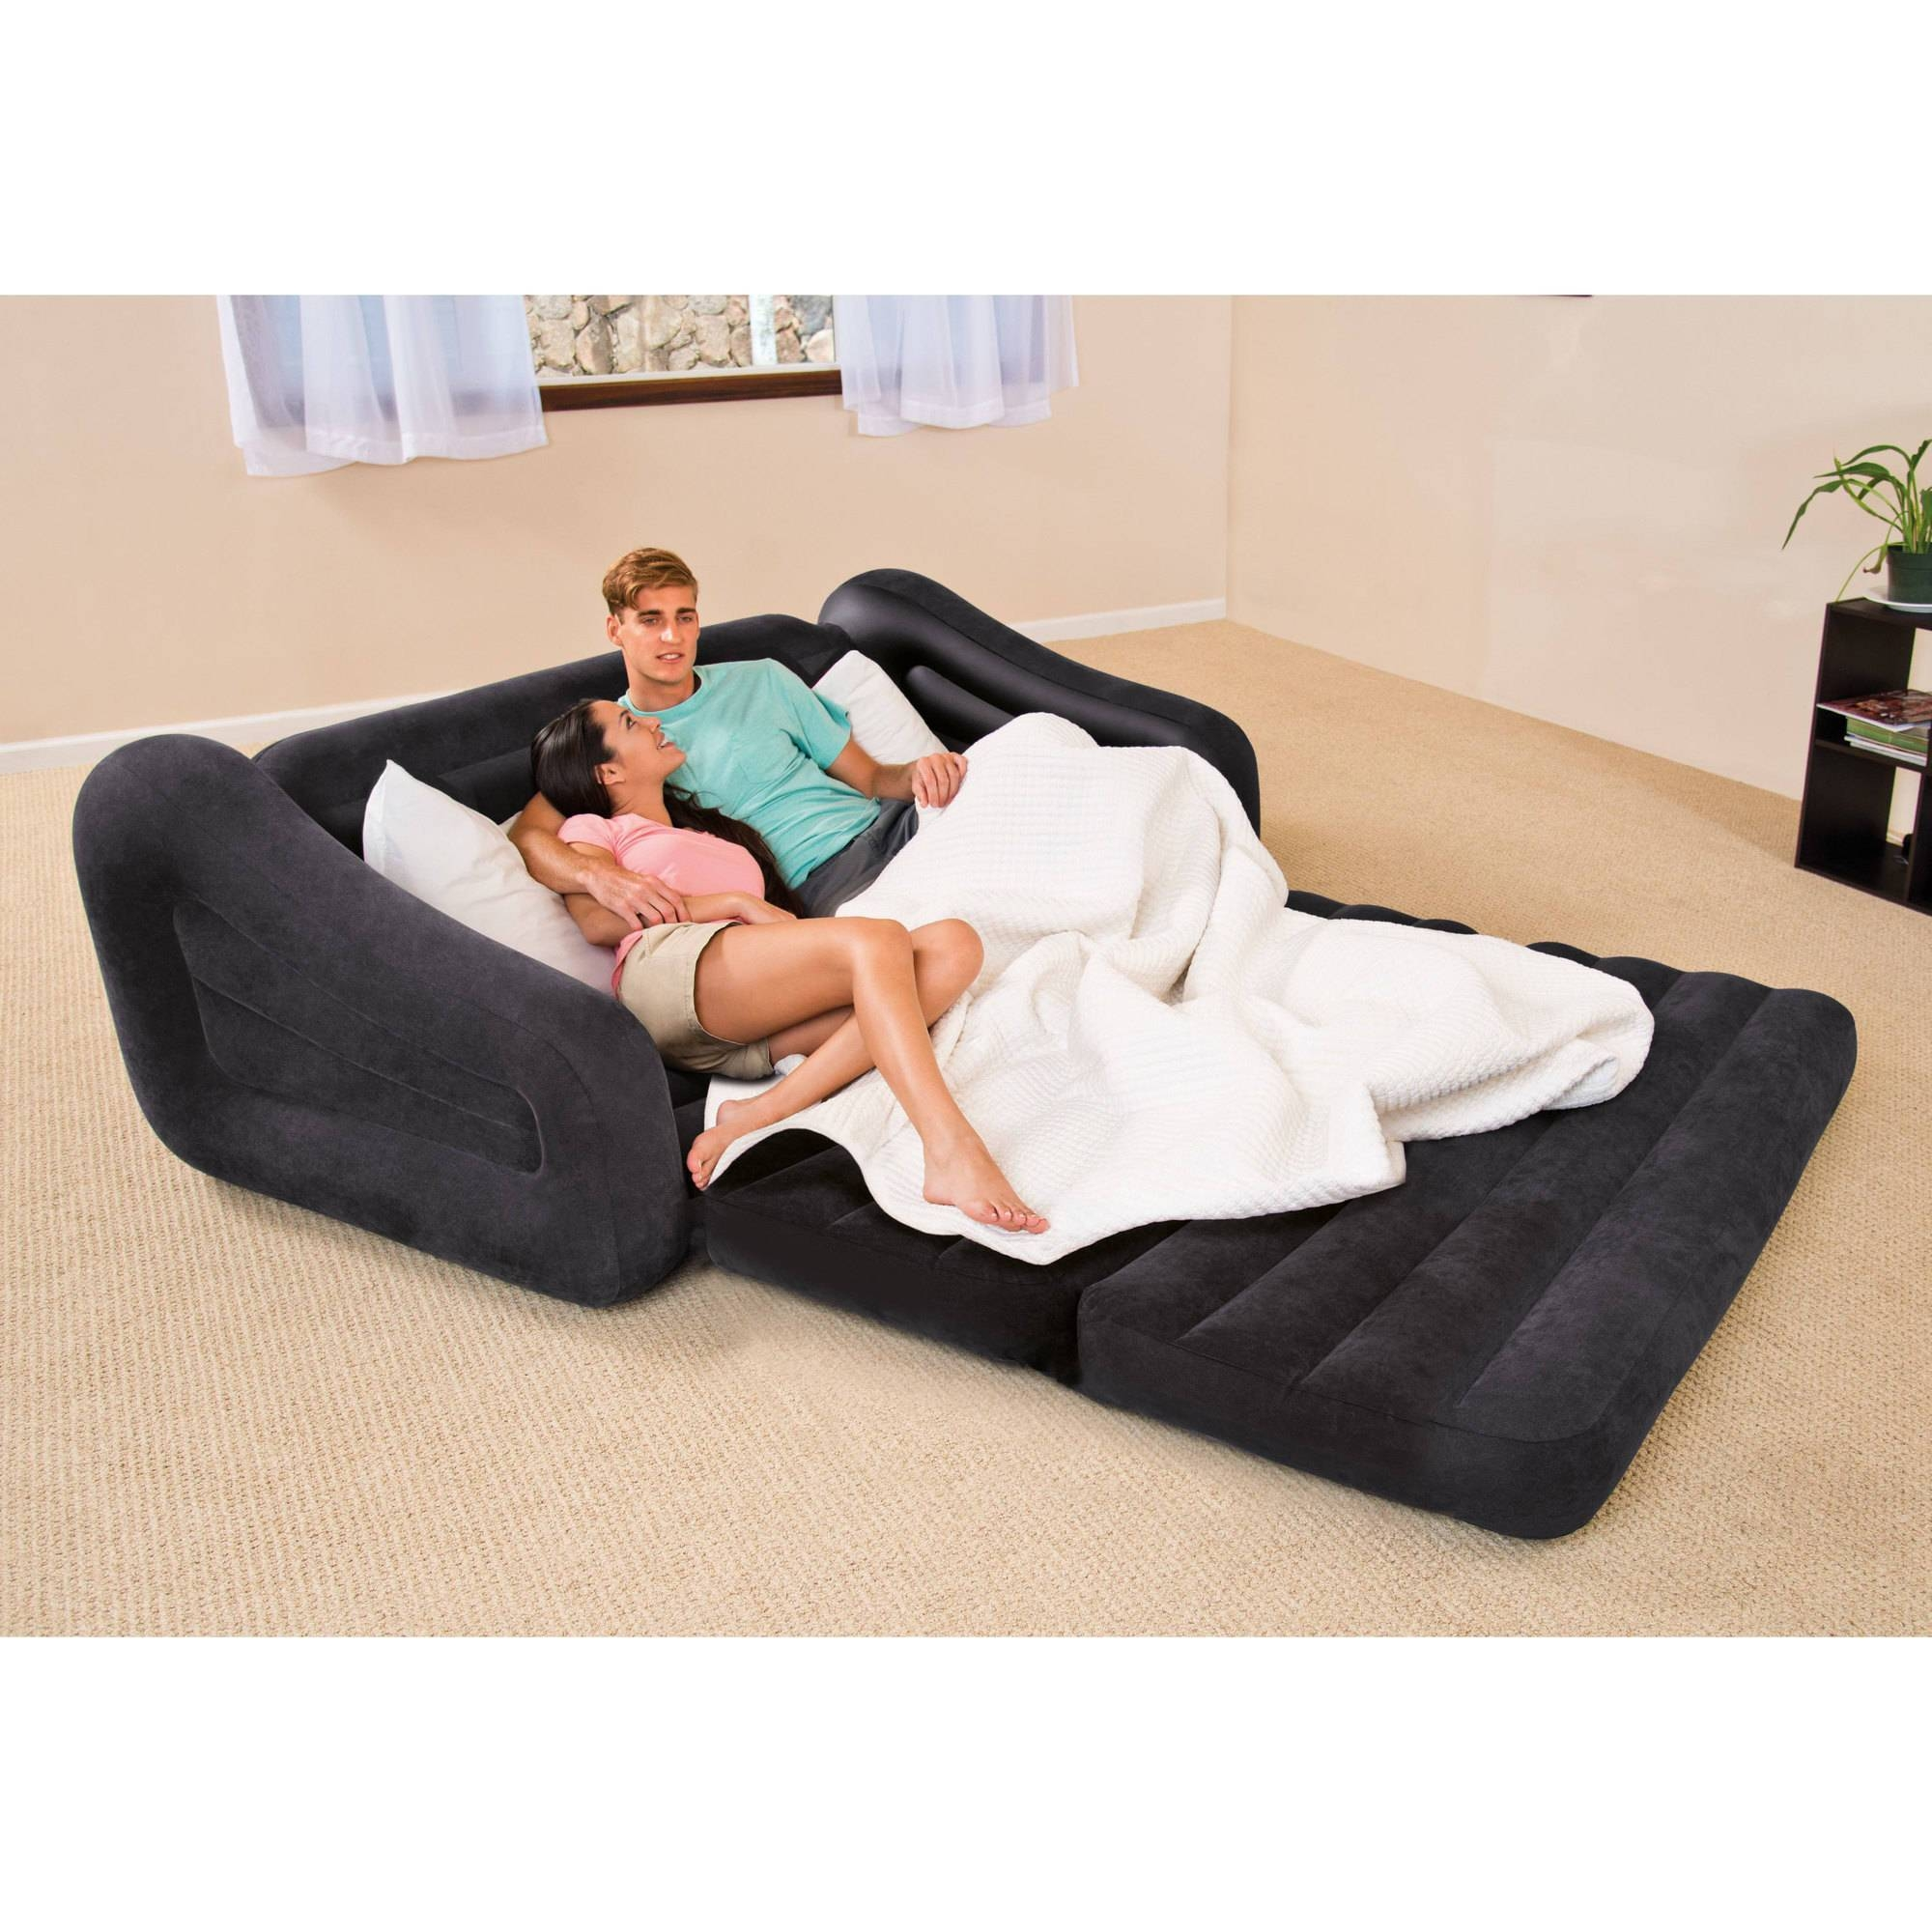 Intex Queen Inflatable Pull Out Sofa Bed - Walmart for Intex Inflatable Pull Out Sofas (Image 13 of 15)